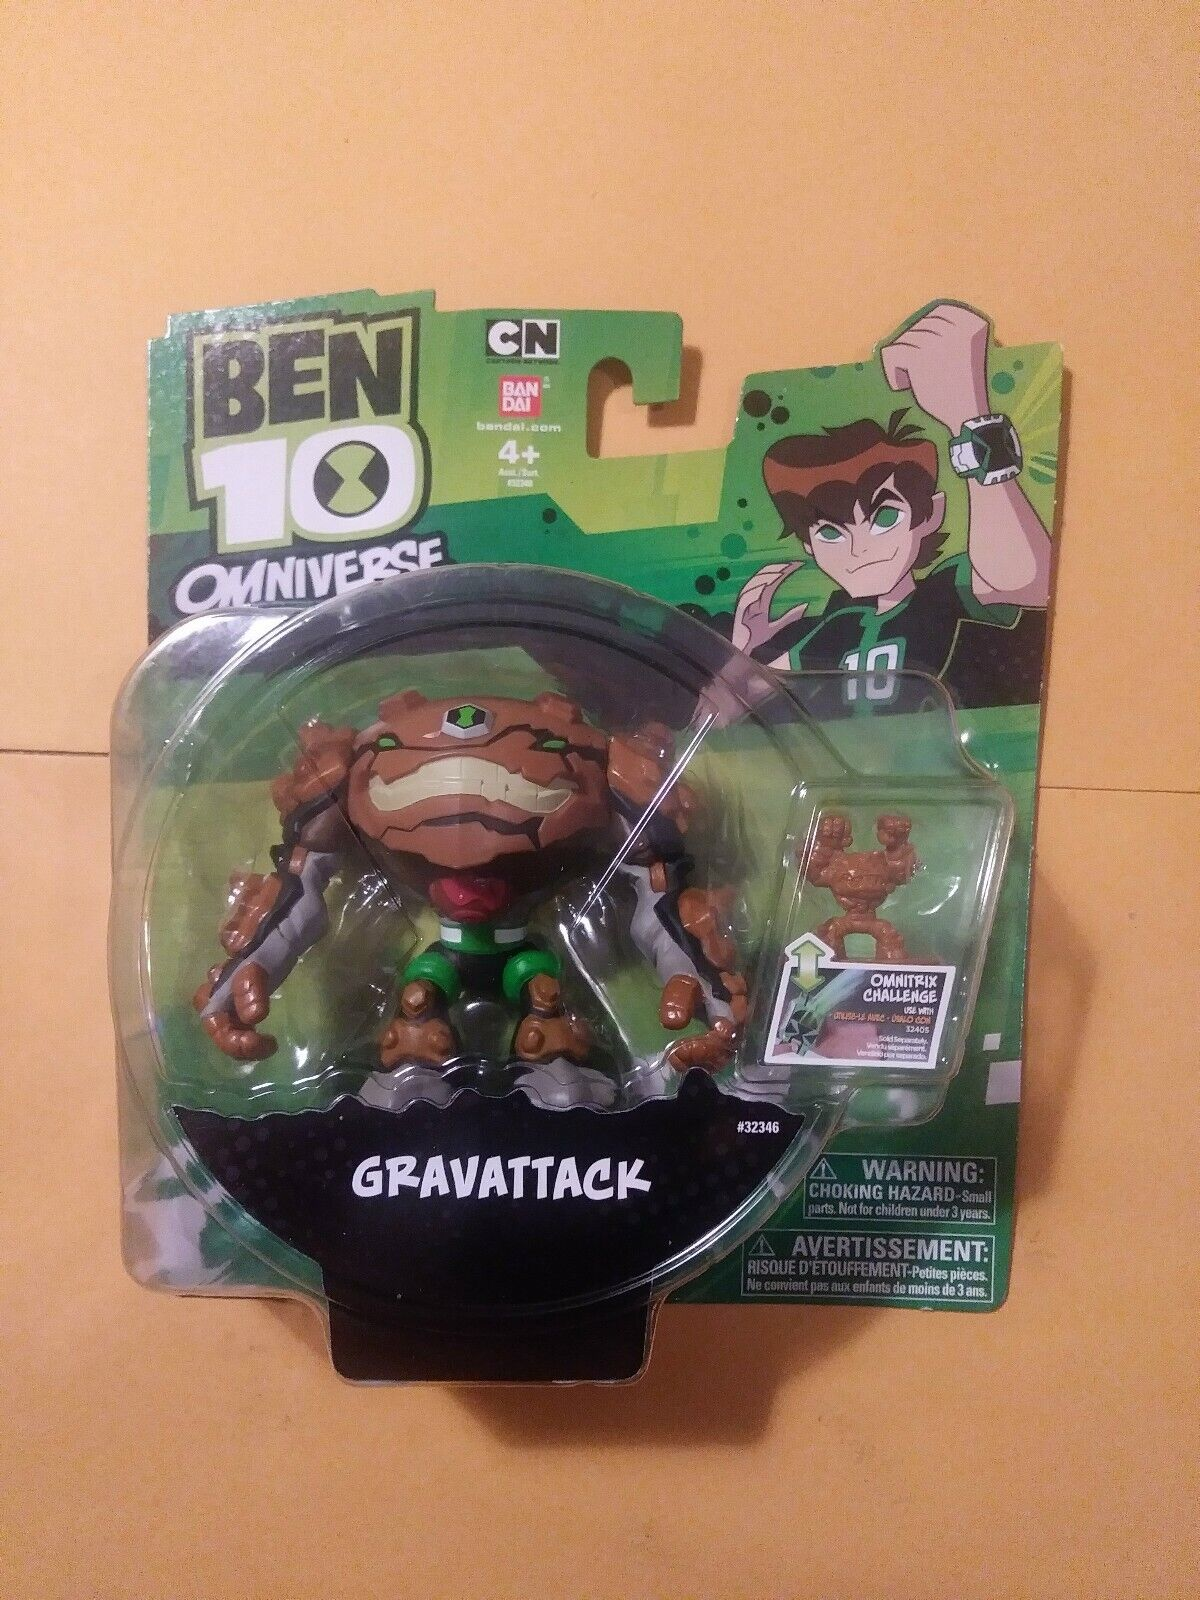 Ben 10 Omniverse Gravattack Action Figure New (Read Description)